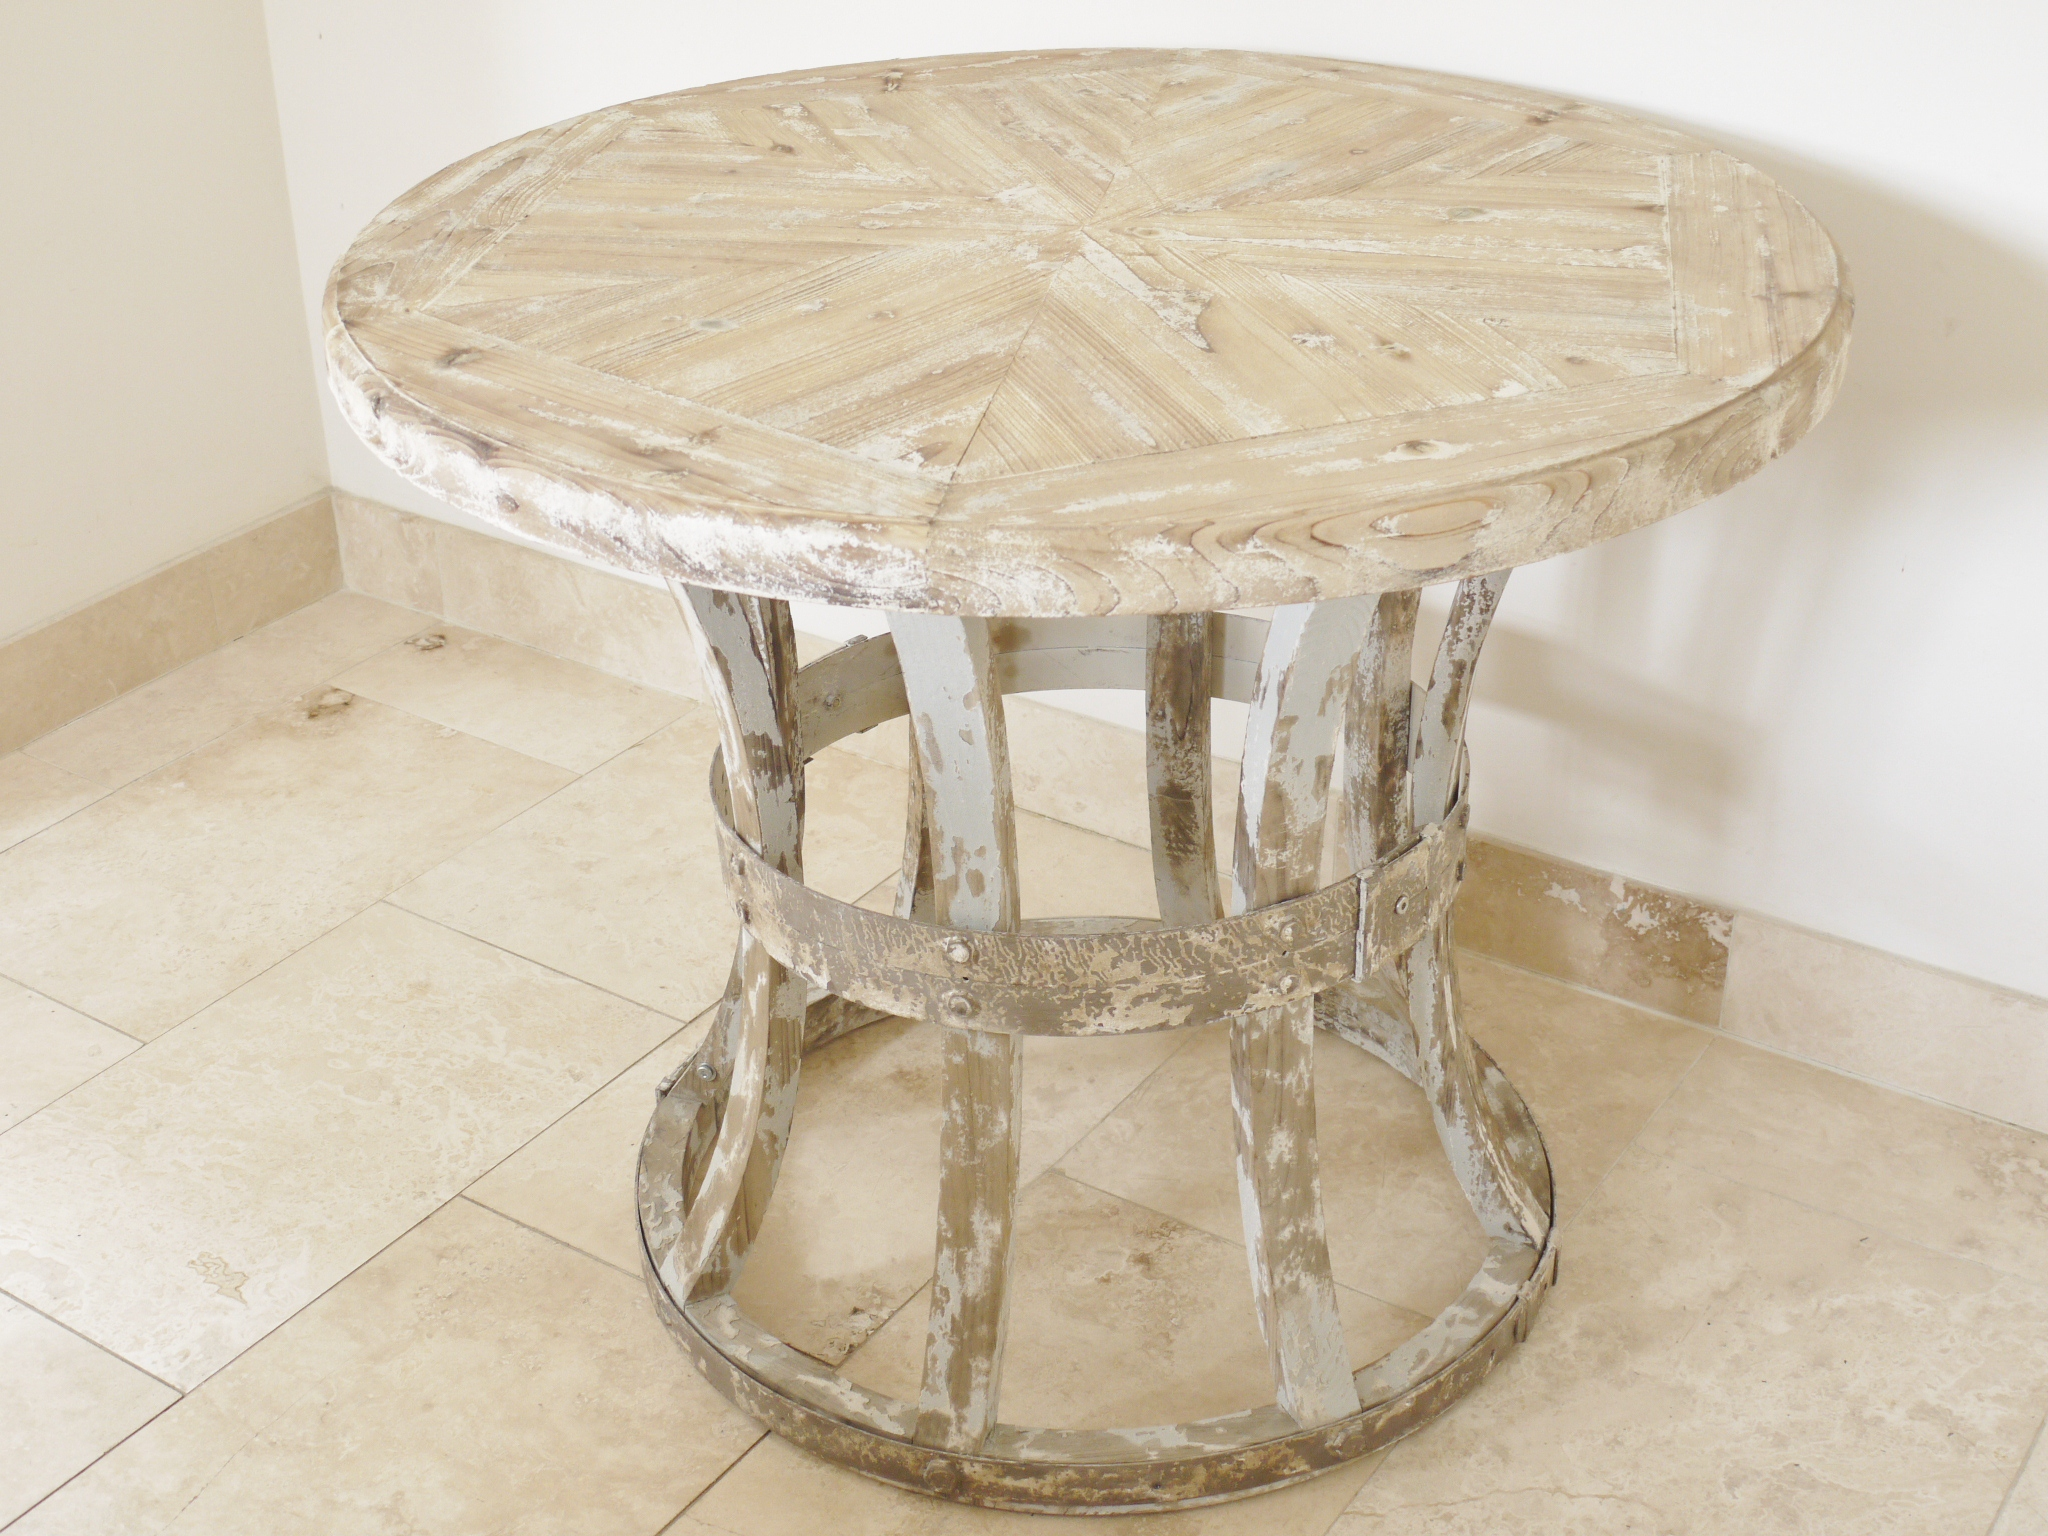 Wood Round Dining Table: Round Wooden Distressed Style Dining Table